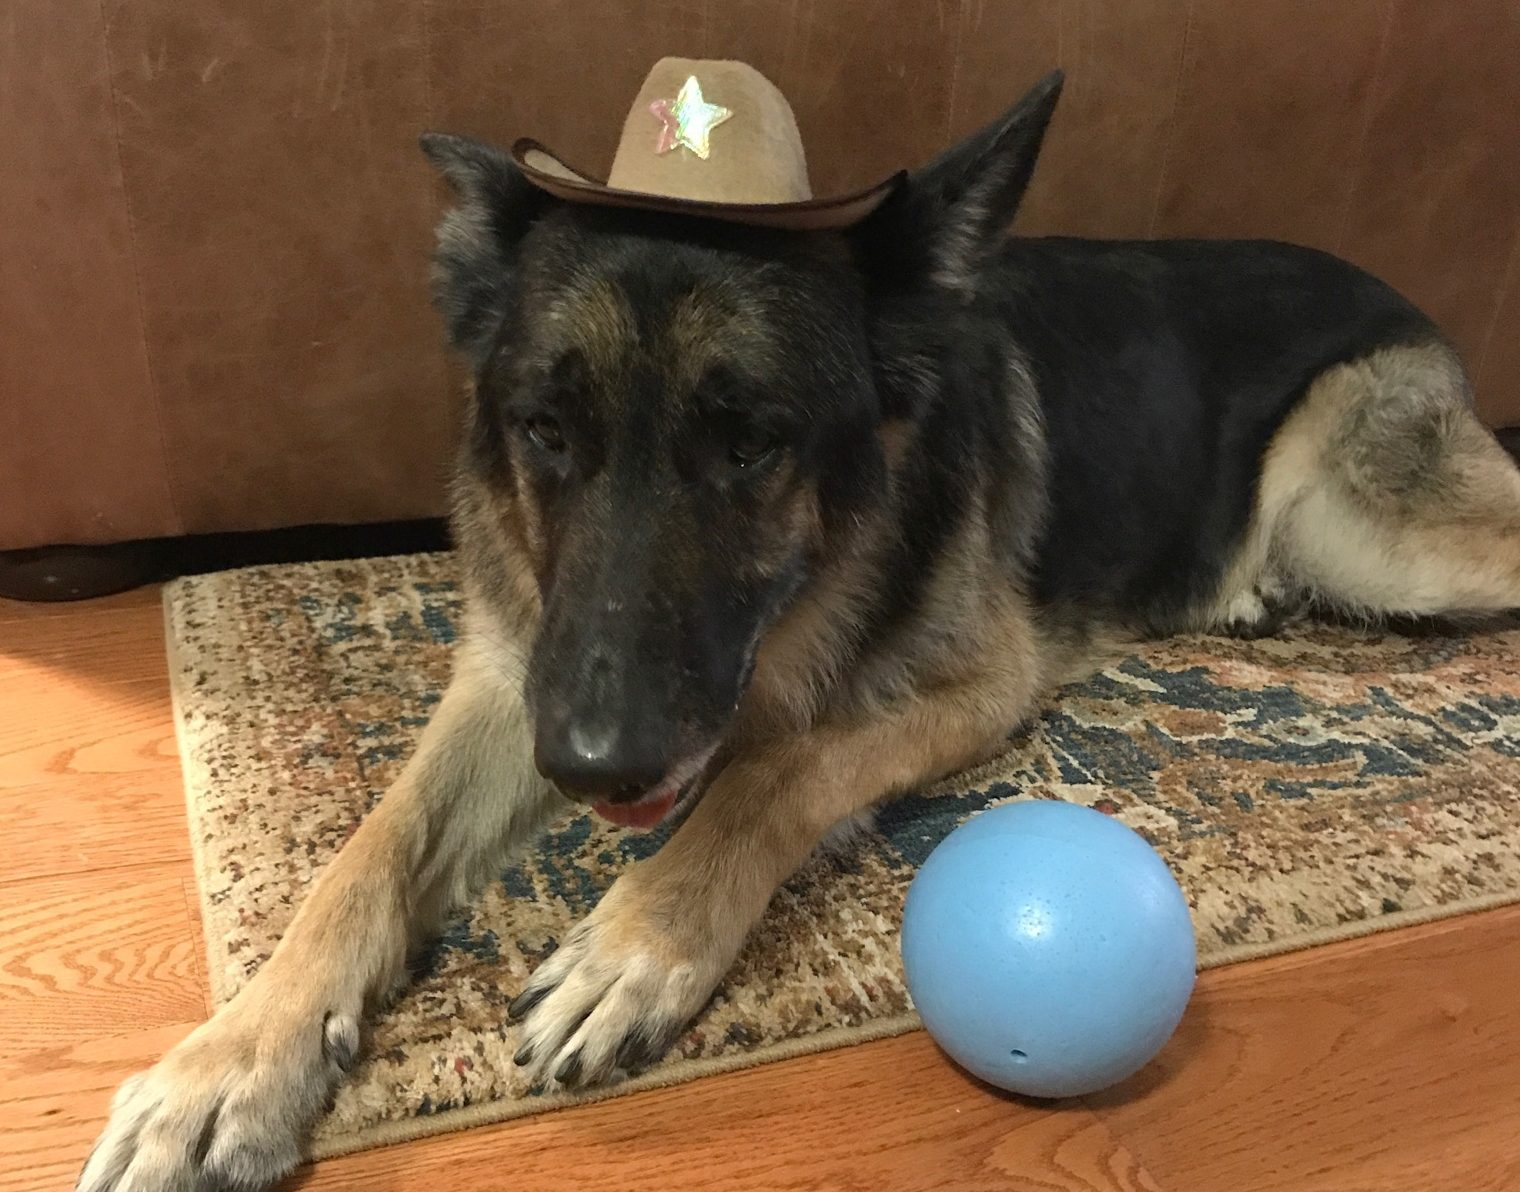 Image perceived to contain Animal, Canine, Collie, Dog, Mammal, Pet, German Shepherd, Hat, Adorable, Cap, Husky, Sun Hat on the 's Pet Costume Contest 2017! - Atlanta & Kennesaw GA Web Design page